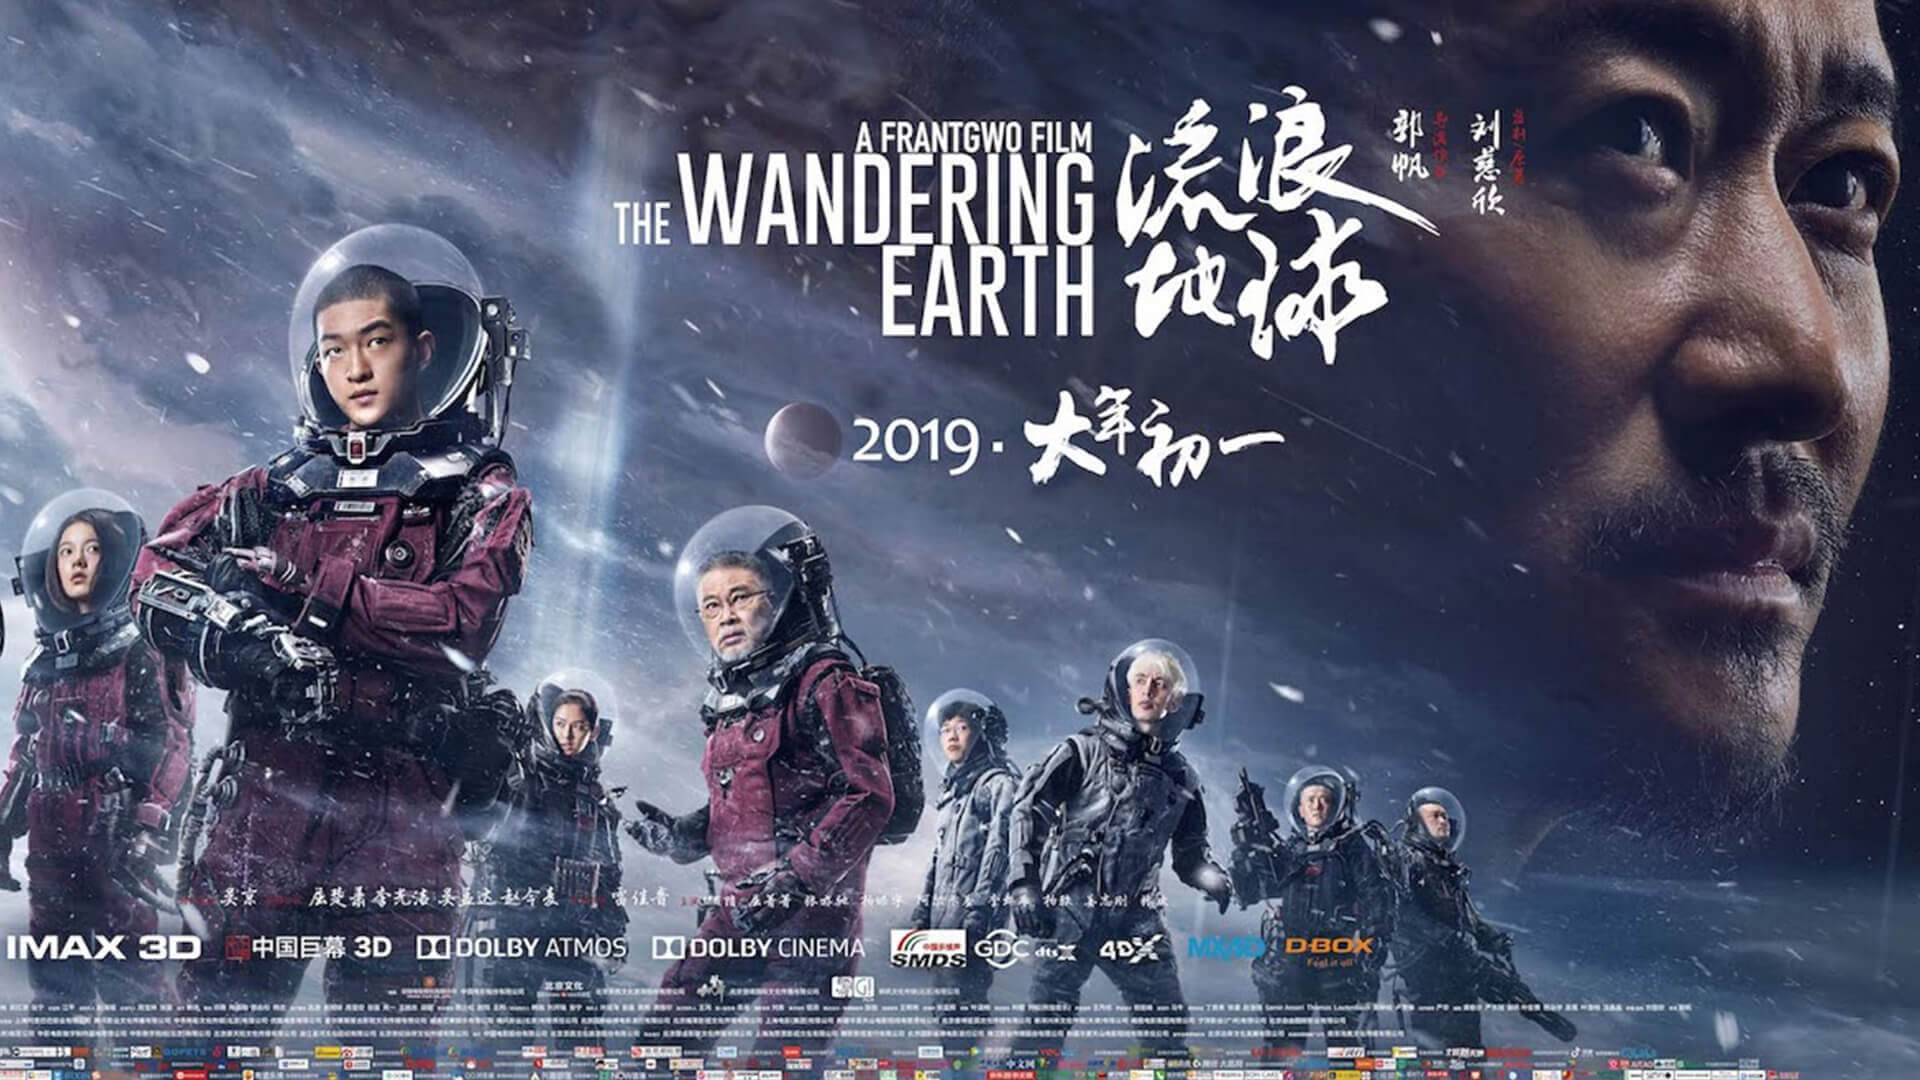 The Wandering Earth movie poster.